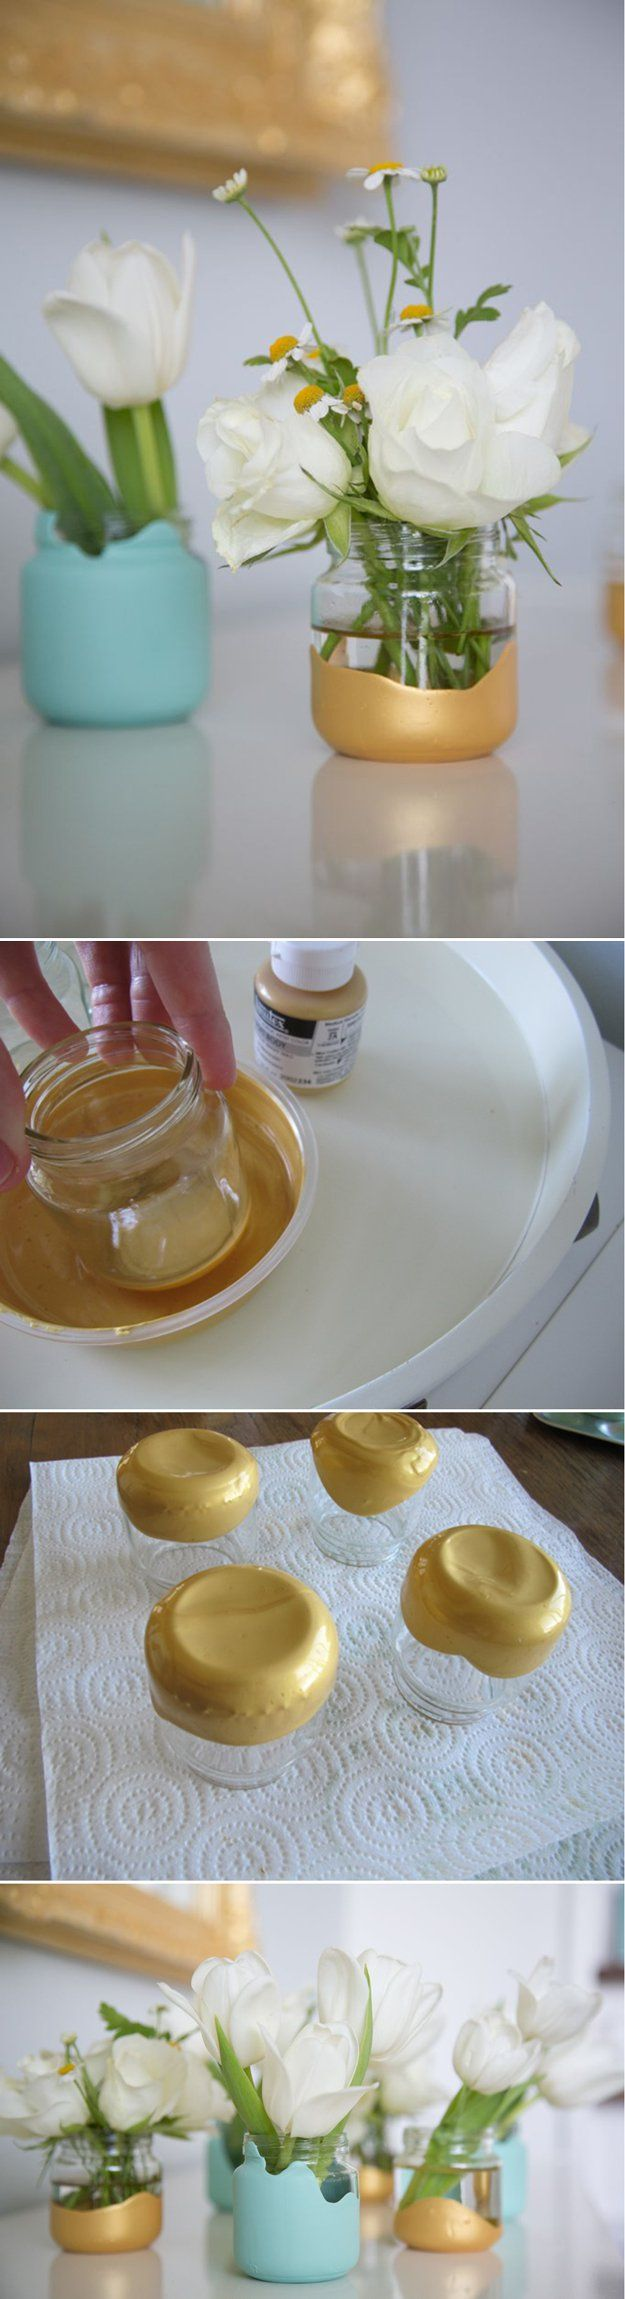 Paint Dipped Baby Food Jar Vases - 23 Clever DIY Uses of Baby Food Jars | Upcycle And Repurpose Ideas at http://diyready.com/diy-uses-of-baby-food-jars/